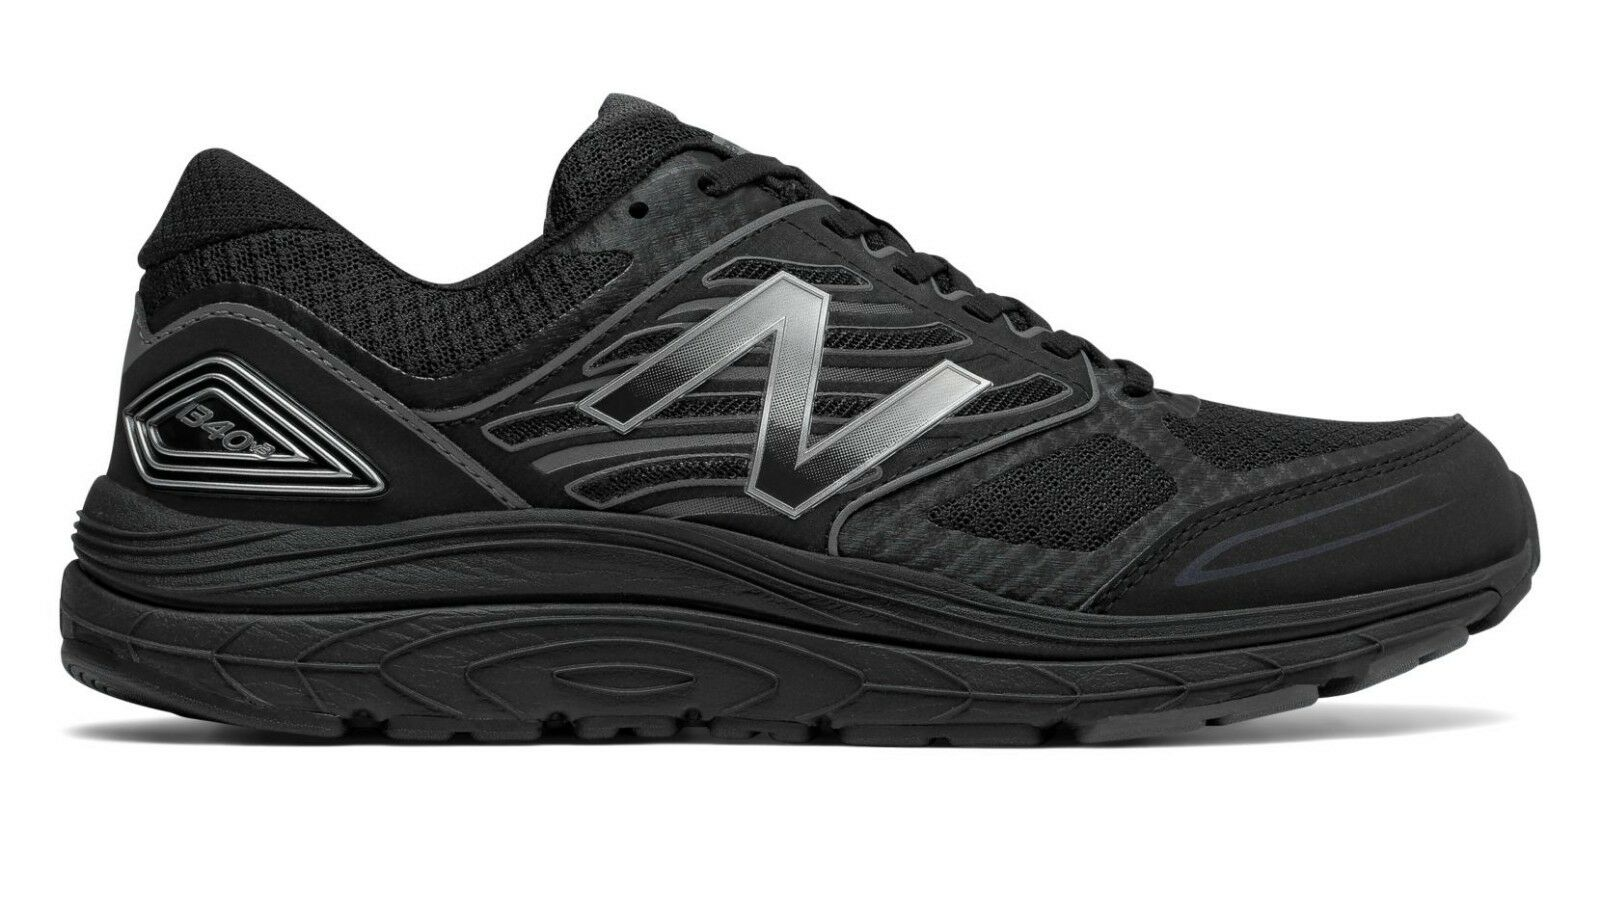 New Balance M1340GB3 Men's 1340v3 Optimum Control Black Training Sneaker Shoes